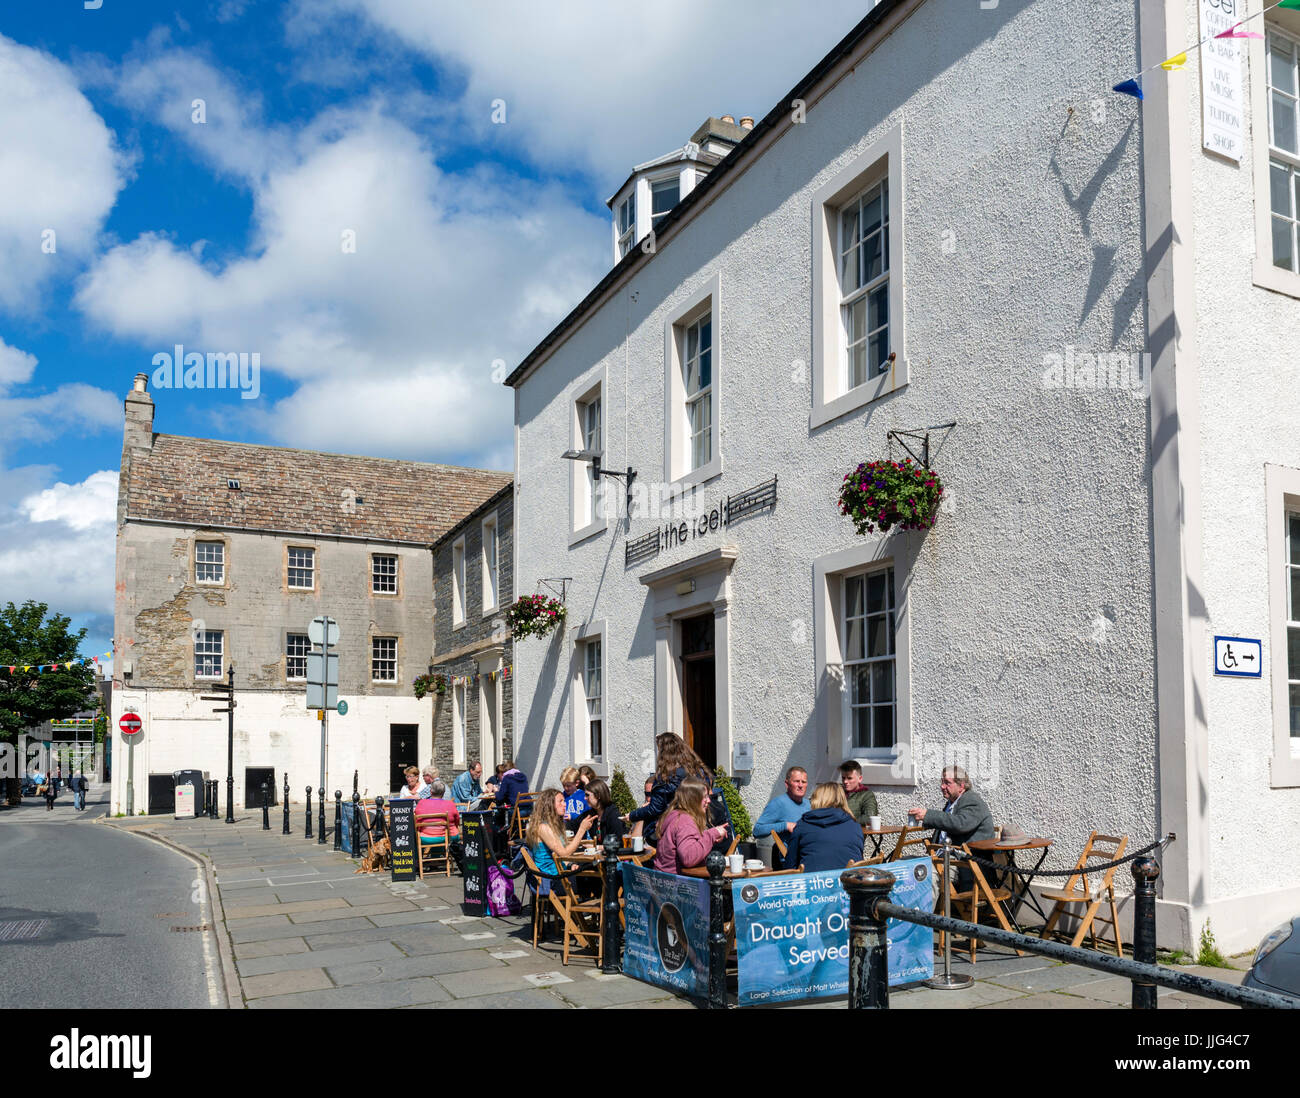 Cafe on Broad Street in the town centre, Kirkwall, Mainland, Orkney, Scotland, UK Stock Photo